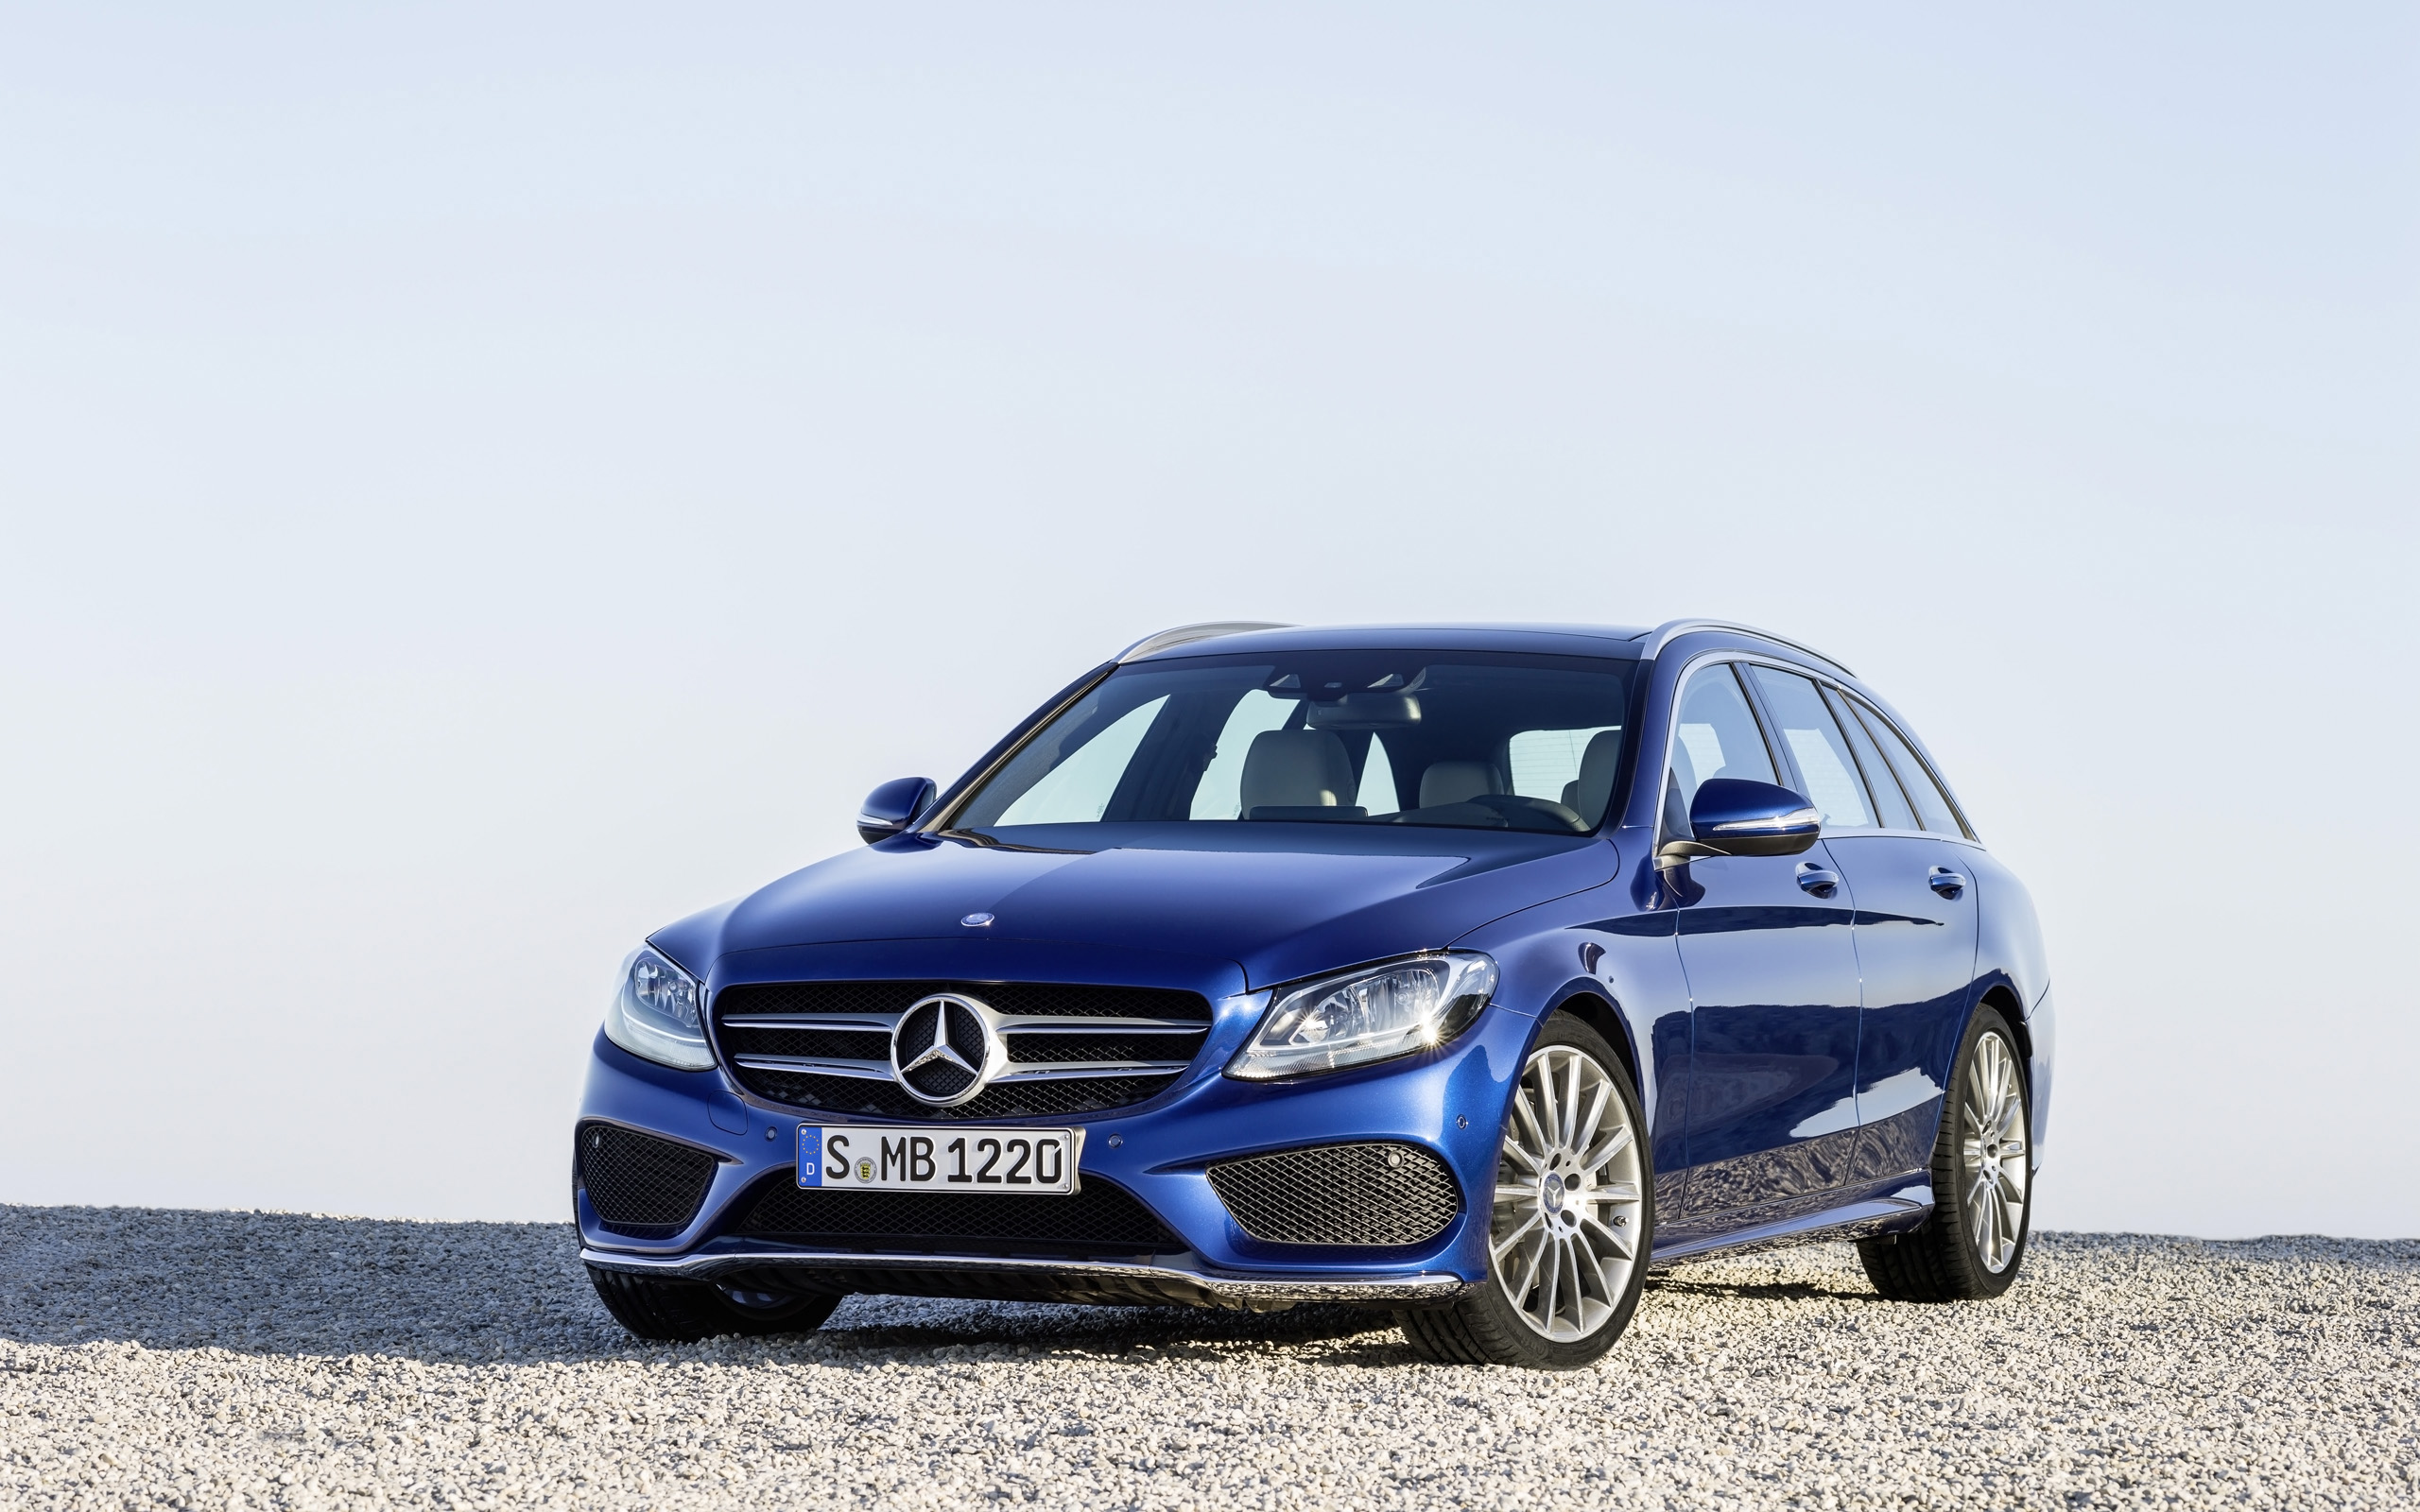 2015 mercedes benz c class estate blue wallpaper | hd car wallpapers